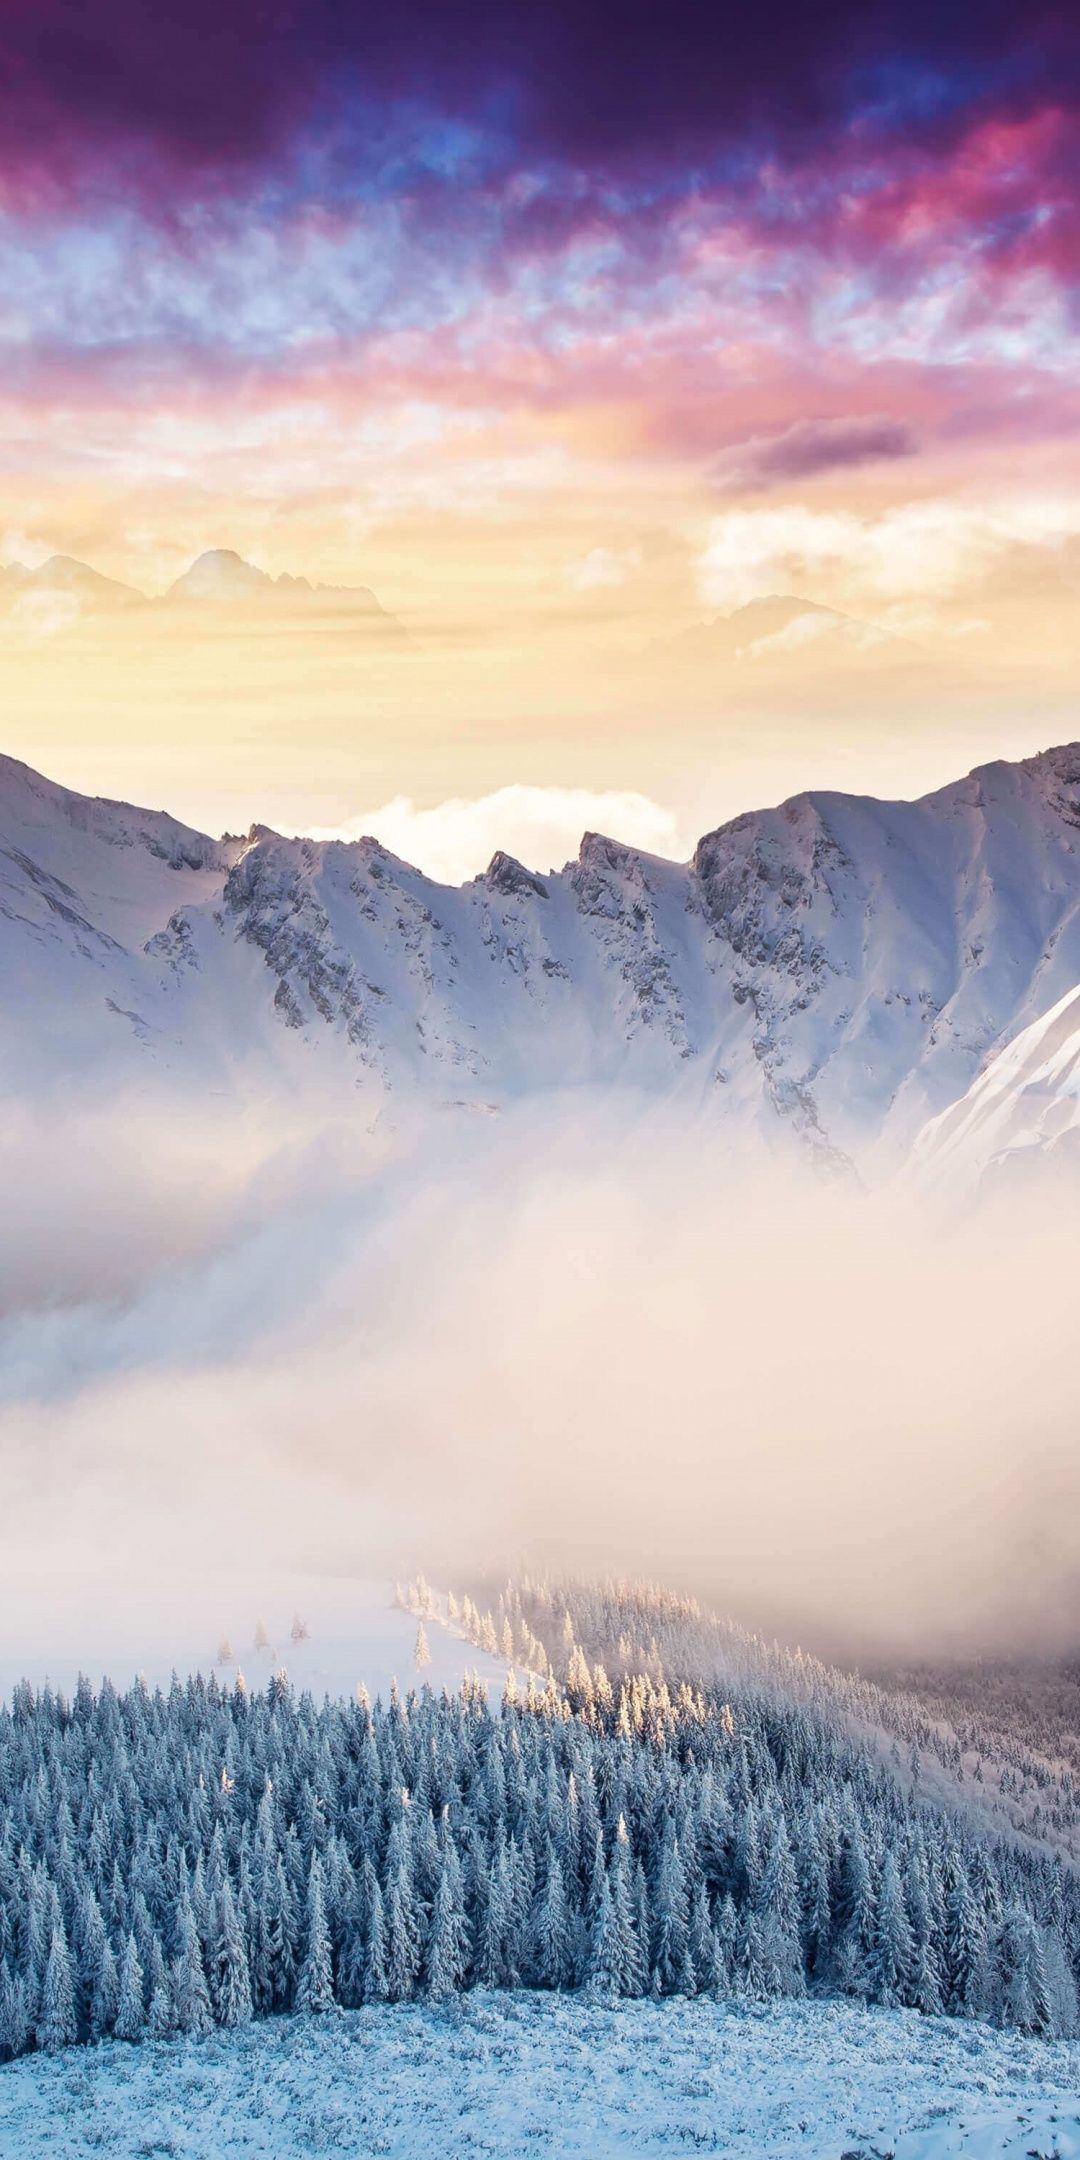 Landscape Mountains Winter Forest Clouds 1080x2160 Wallpaper Winter Landscape Winter Forest Landscape